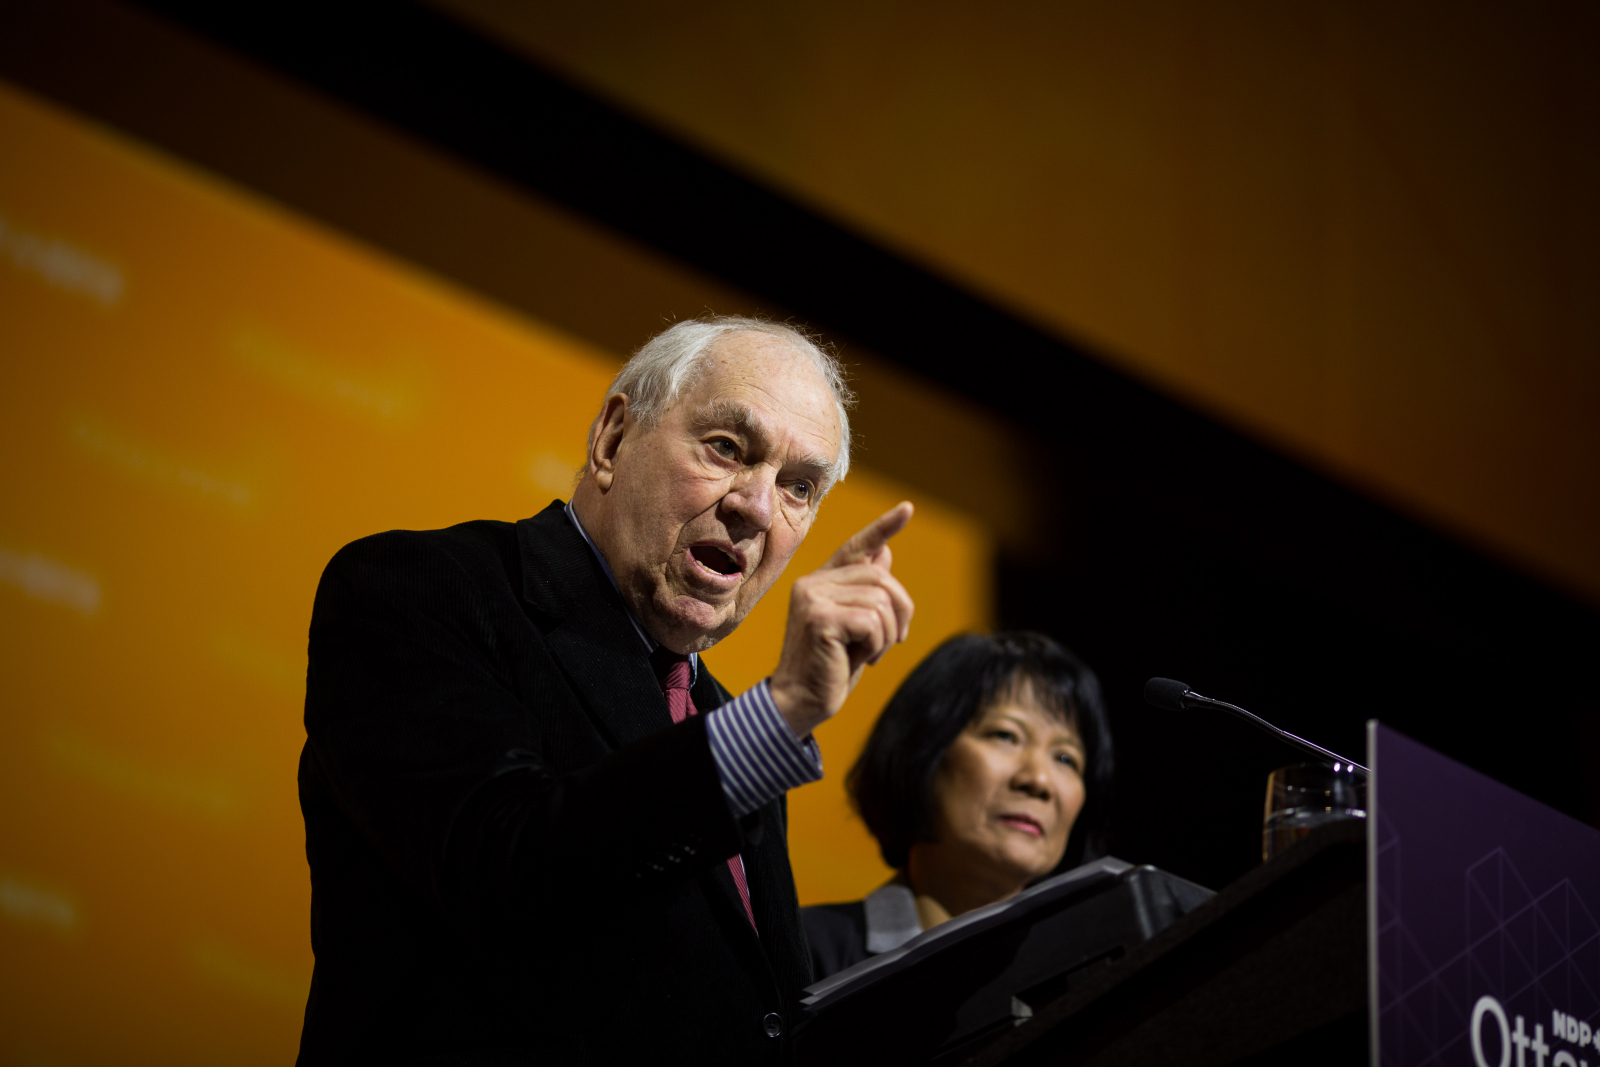 Former NDP leader Ed Broadbent and former NDP MP Olivia Chow address delegates at the Shaw Conference Centre on Feb. 17, 2018. Photo by Alex Tétreault